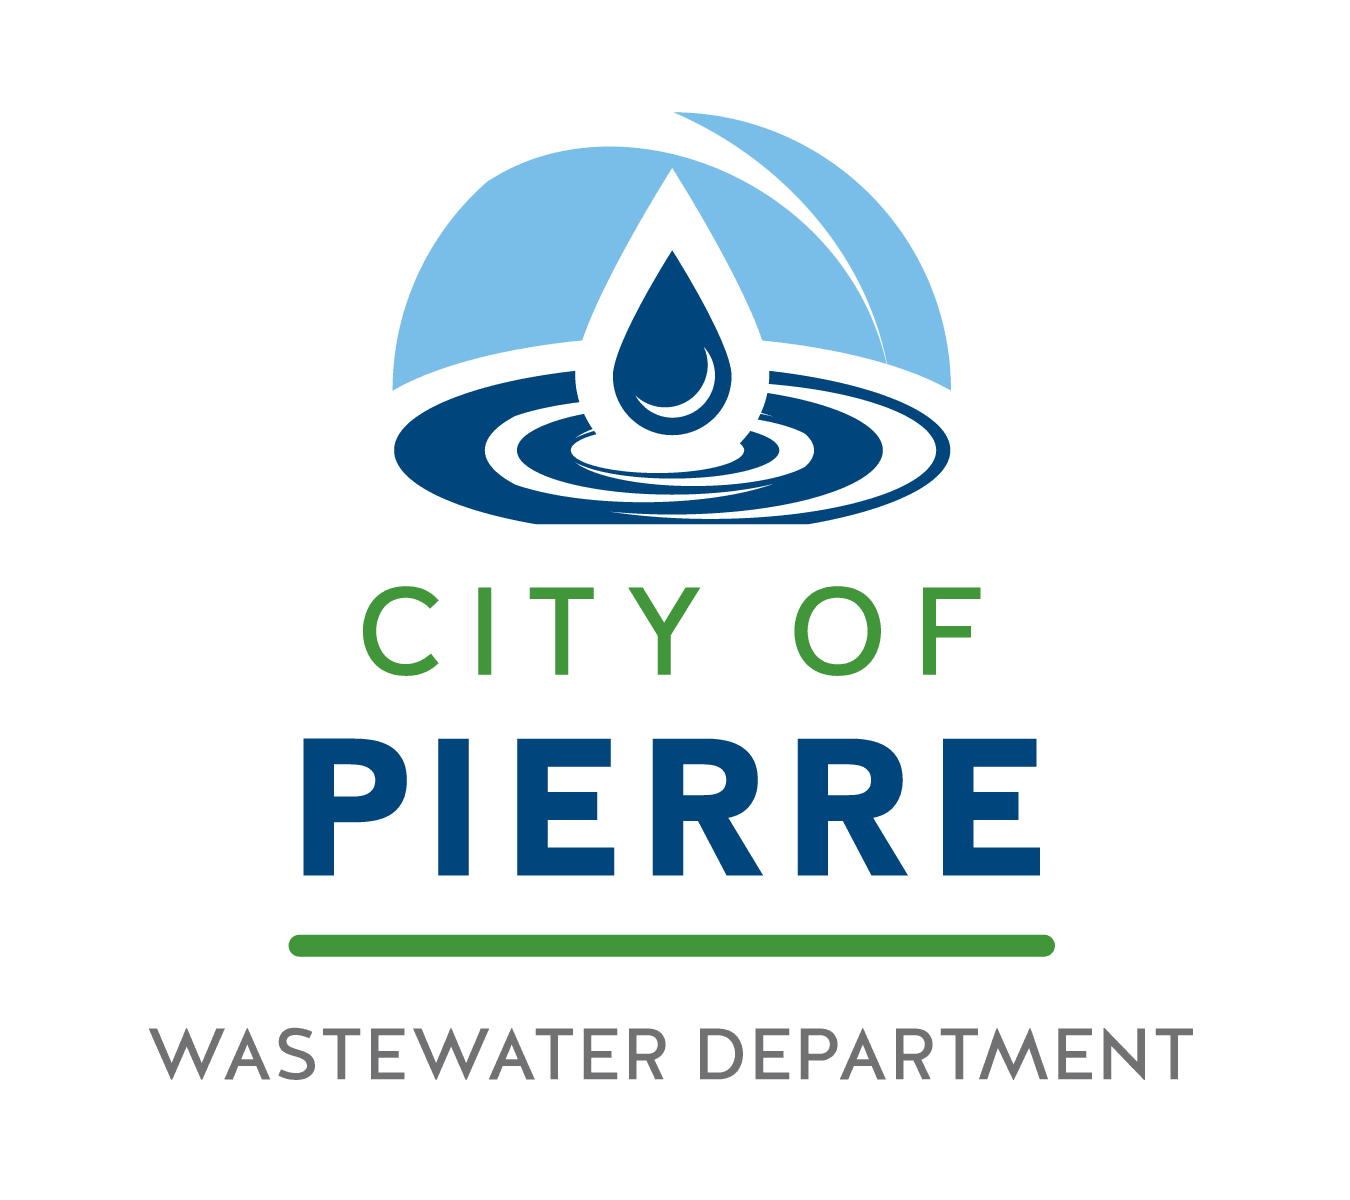 City of Pierre Wastewater Logo